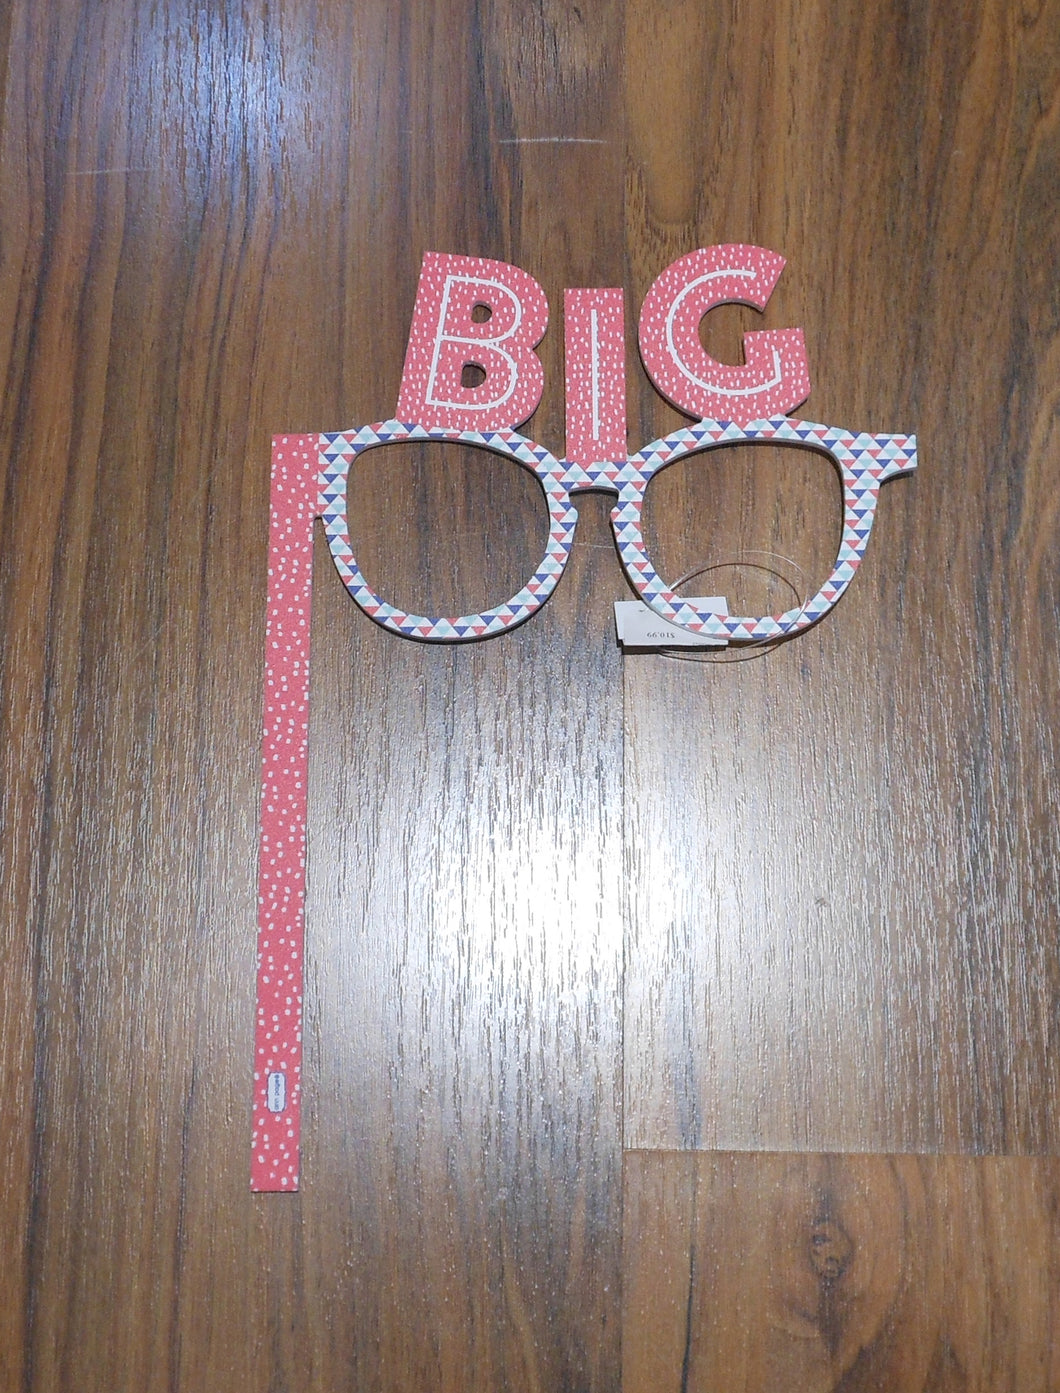 SORORITY BIG PHOTO PROP